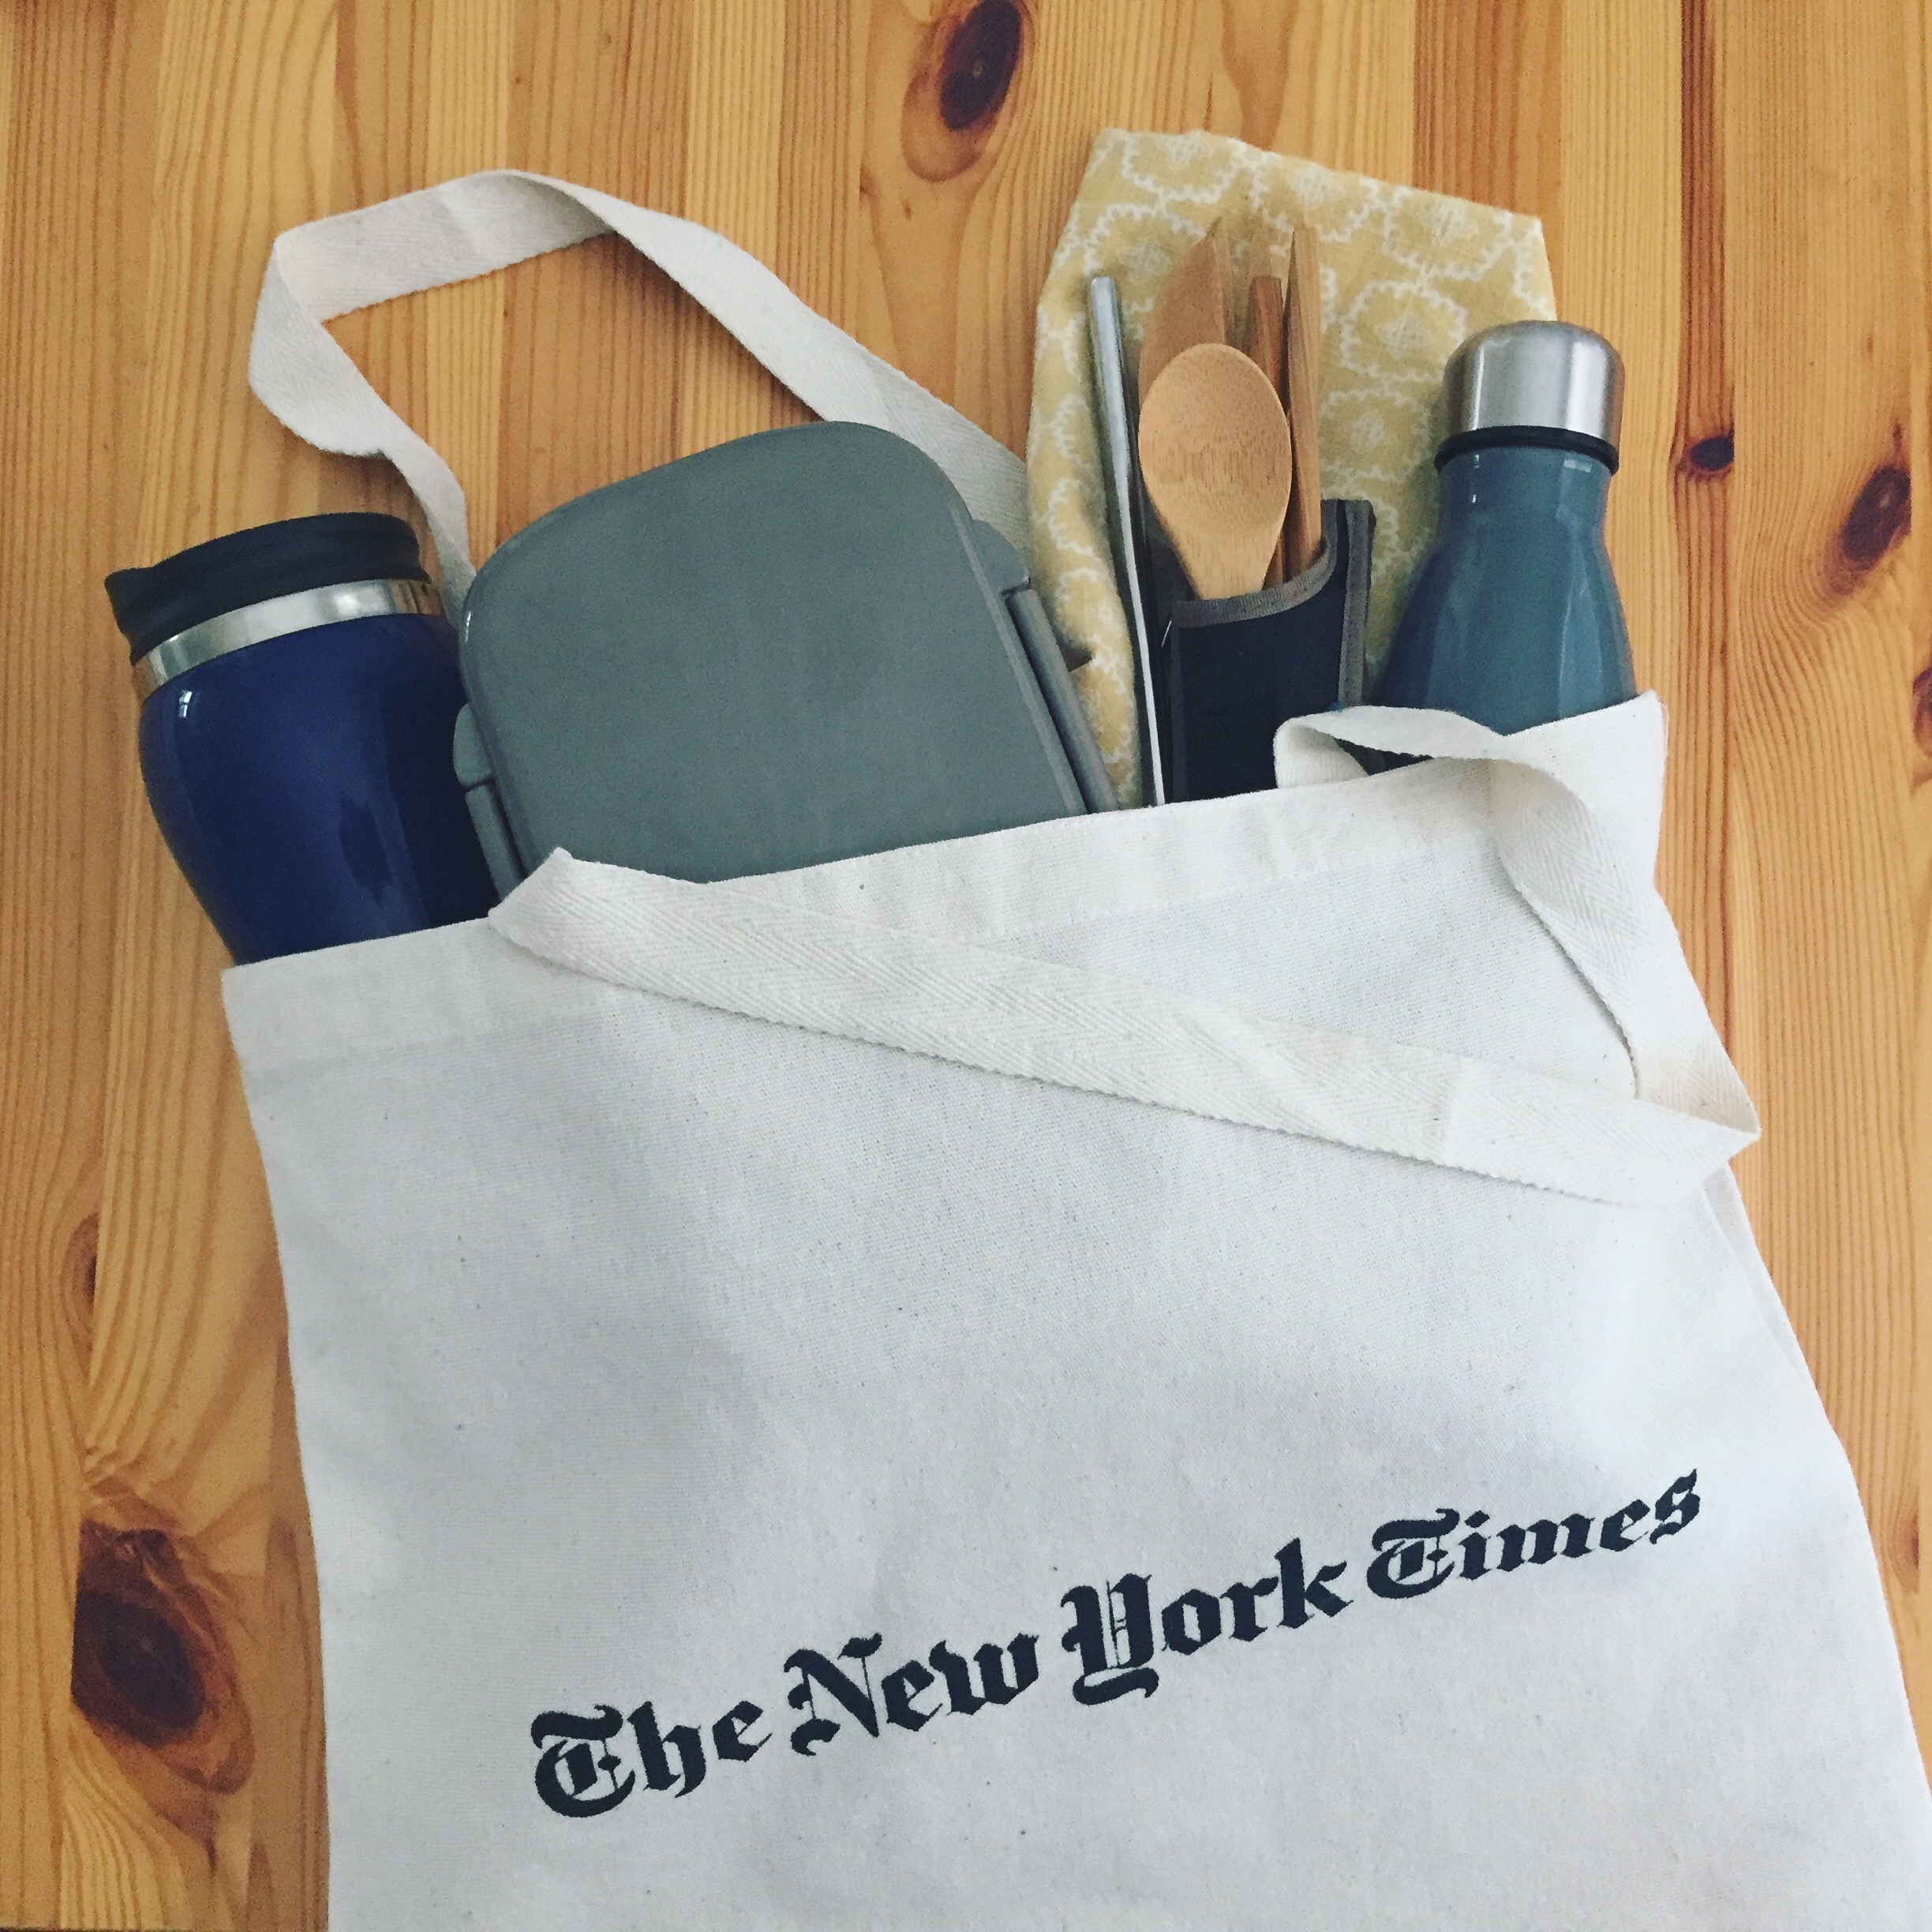 I carry a #zerowaste on-the-go kit with my water bottle, utensils, mug, container, napkin, and straw in a reusable tote!